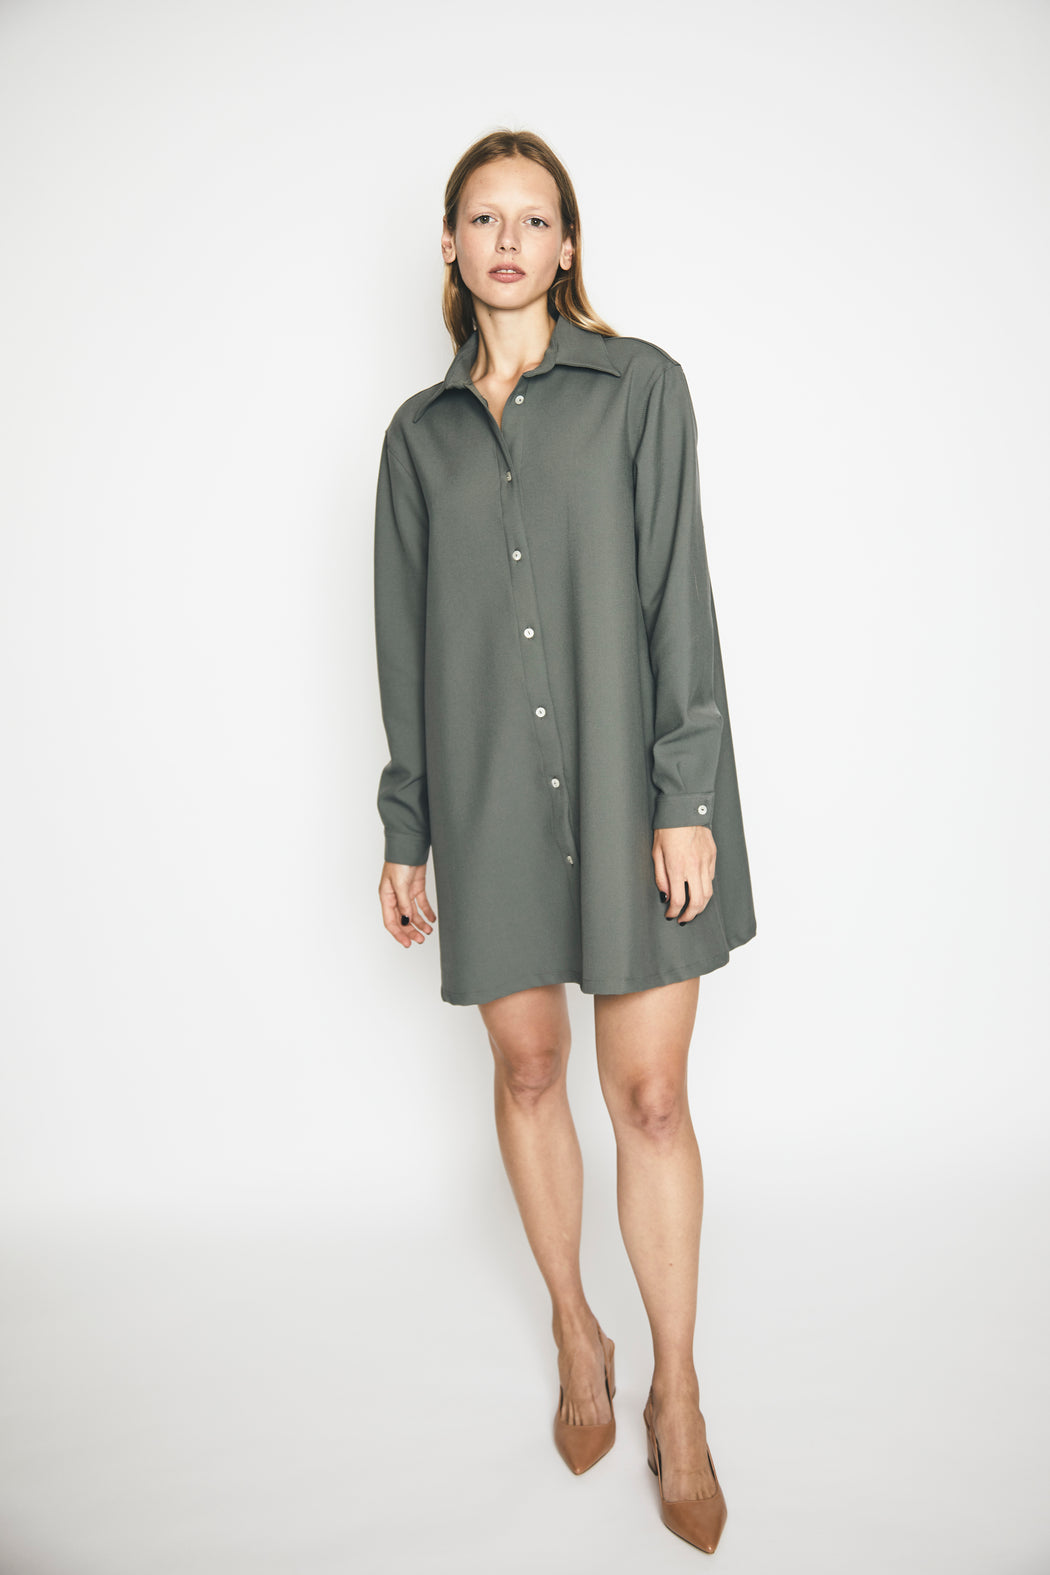 Alexis Dress | Dresses & Jumpsuits | Fair Retail | [product_tag] - Fair Bazaar Ethical Living